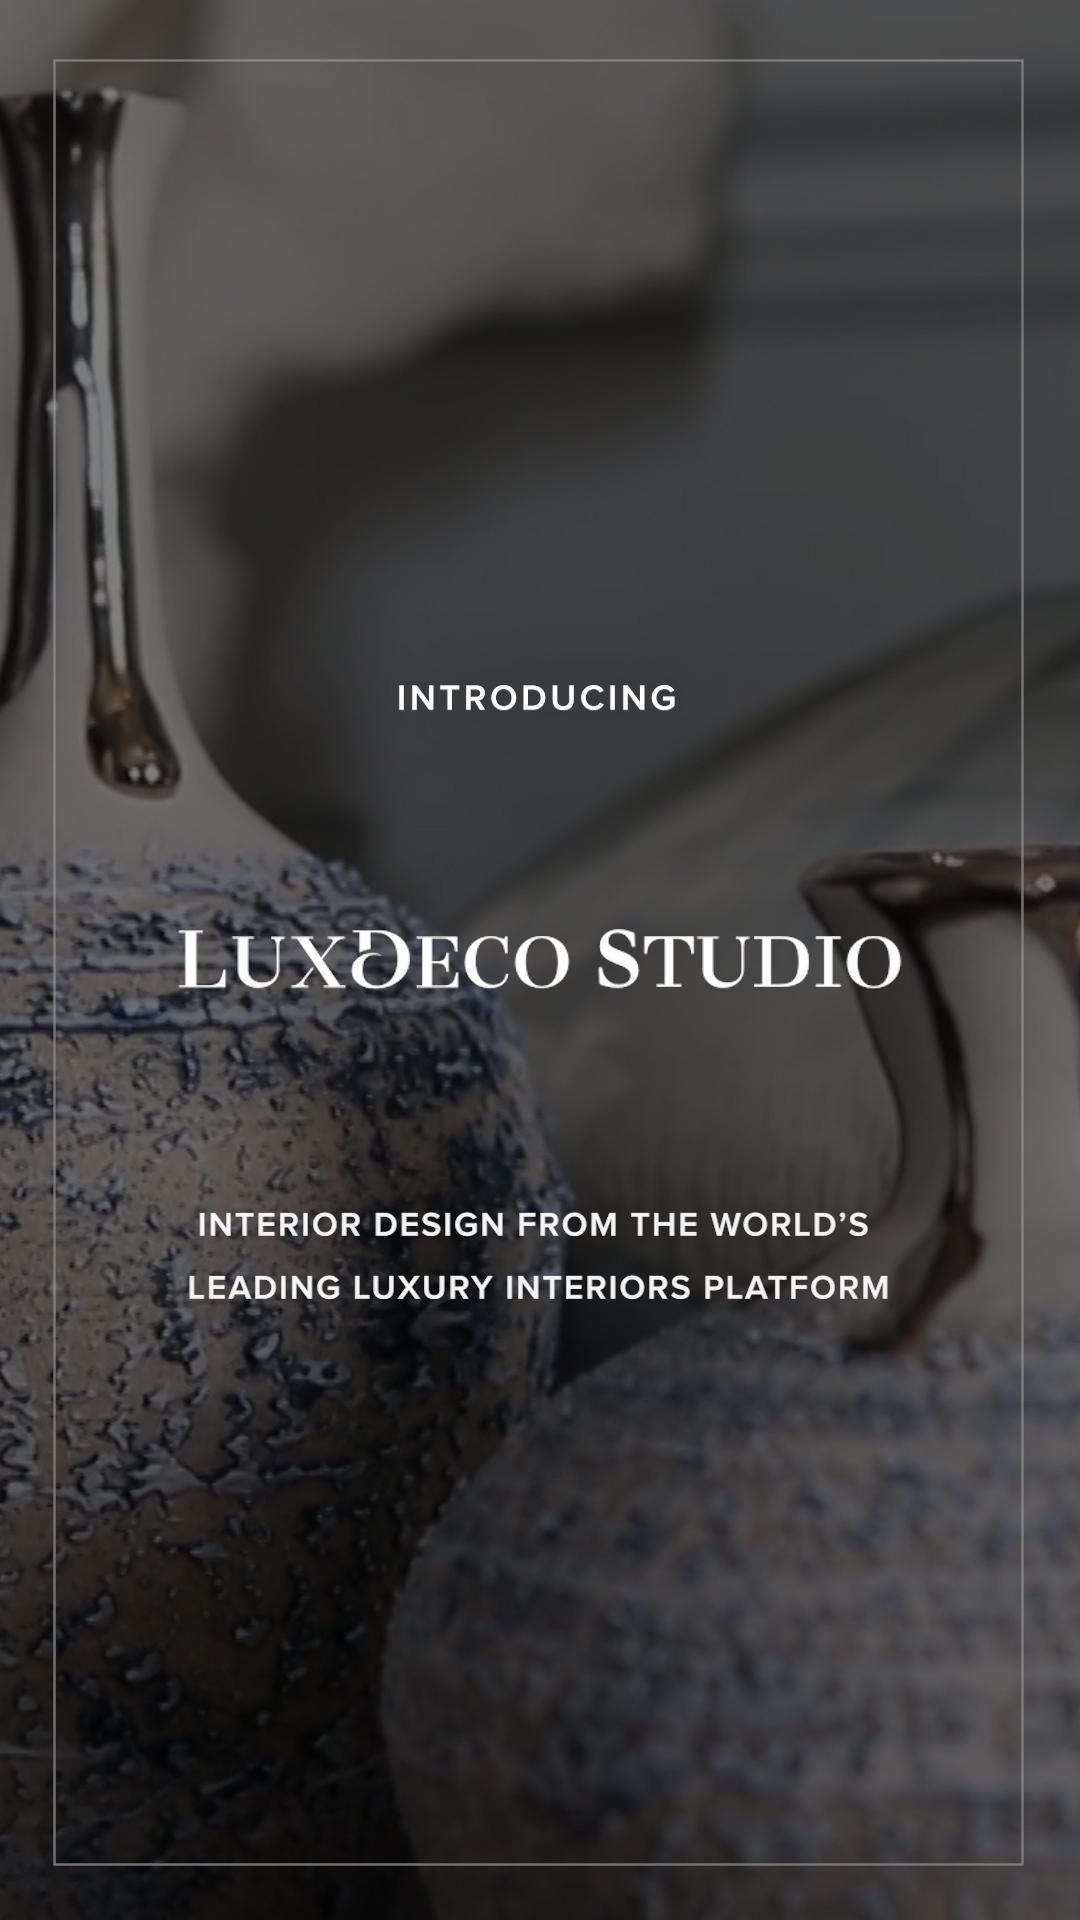 Introducing LuxDeco Studio—Luxury interior design from the world's leading luxury interiors platform.  Based in London and working internationally, LuxDeco Studio are an authority on both luxury and interiors. From full-service residential and hospitality interior design, project management, showhome staging, product sourcing, bespoke furniture design and more, LuxDeco Studio provide services for clients in   Contact LuxDeco Studio on studio@luxdeco.com.